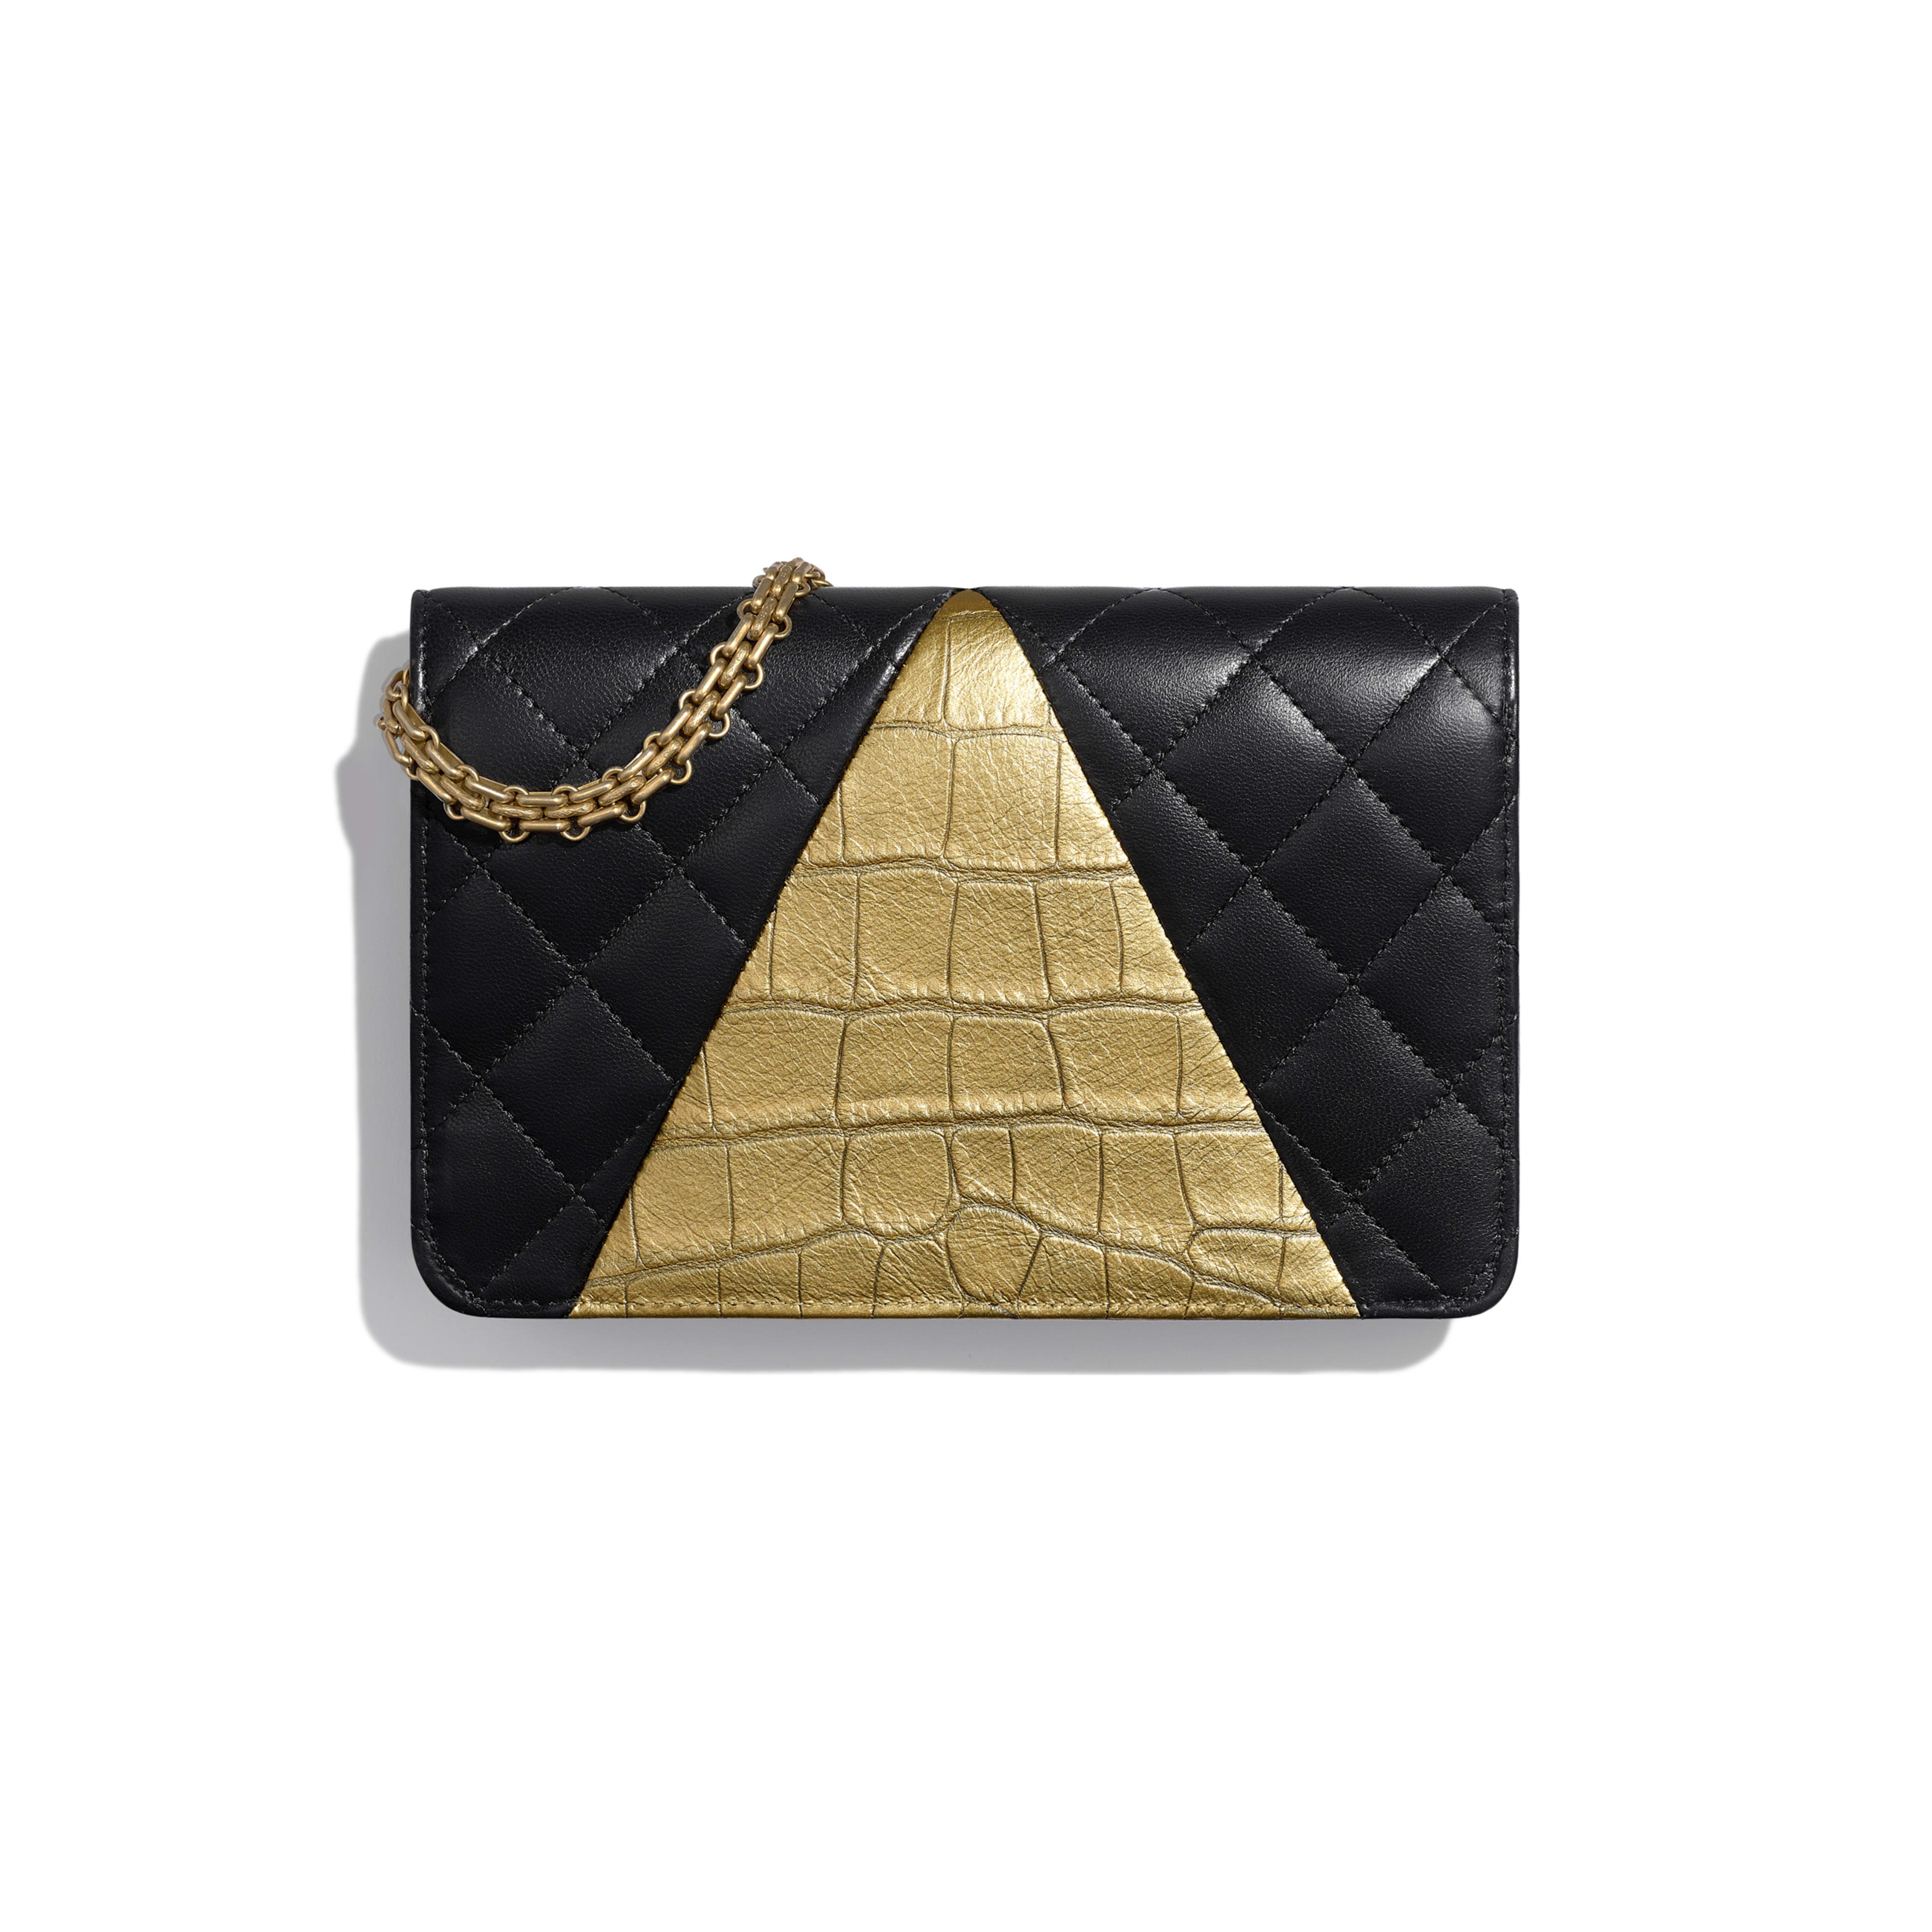 Wallet on Chain - Black & Gold - Lambskin, Crocodile Embossed Calfskin & Gold-Tone Metal - Alternative view - see full sized version